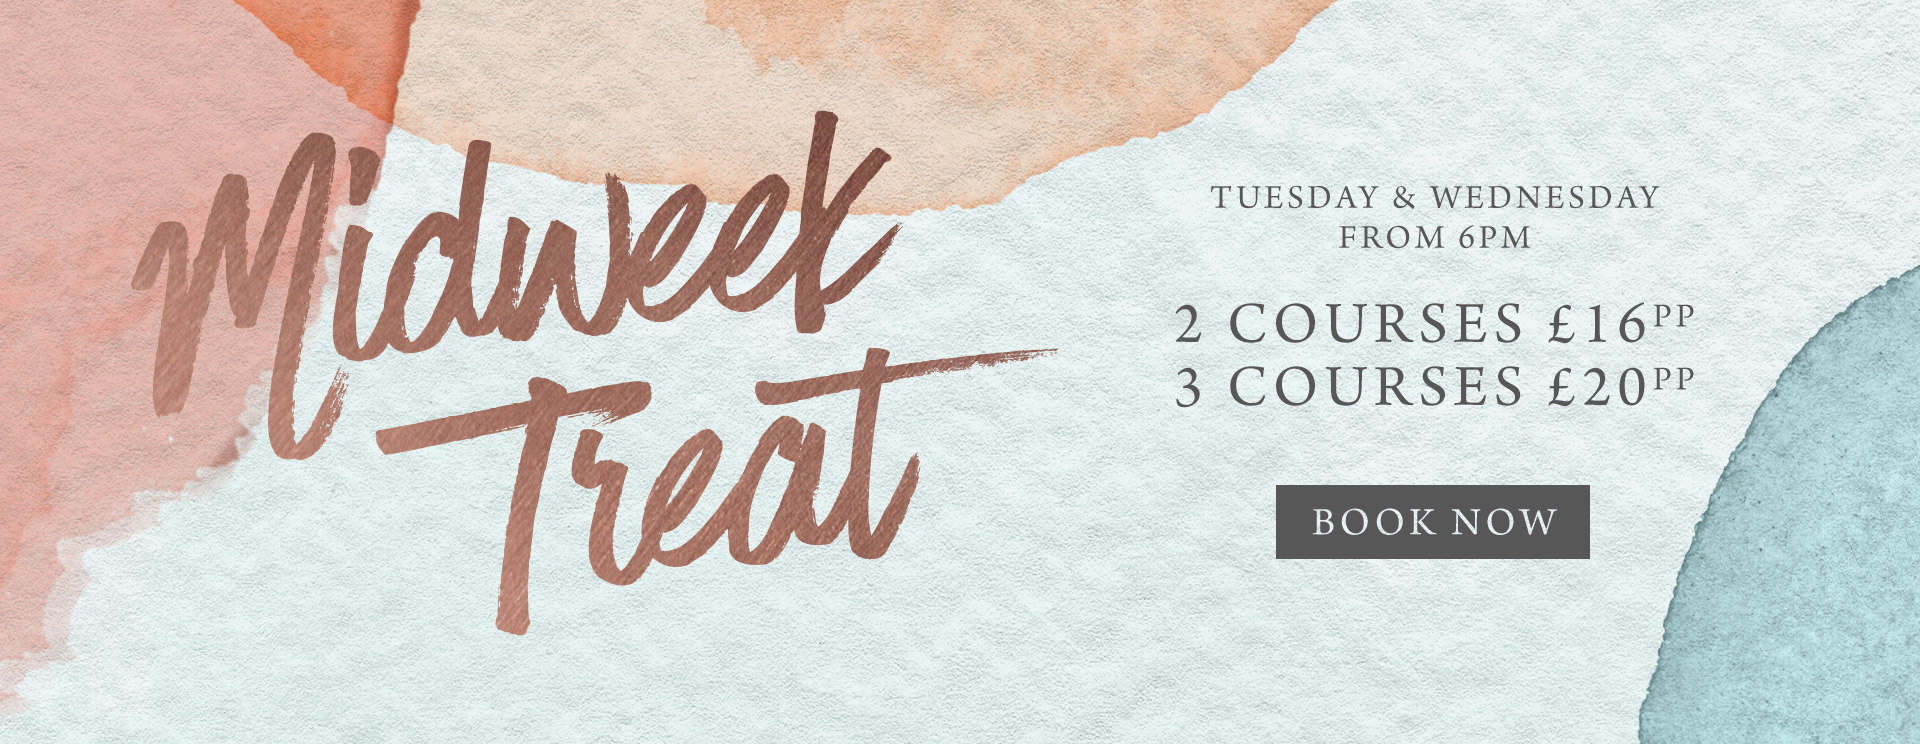 Midweek treat at The Woolpack - Book now